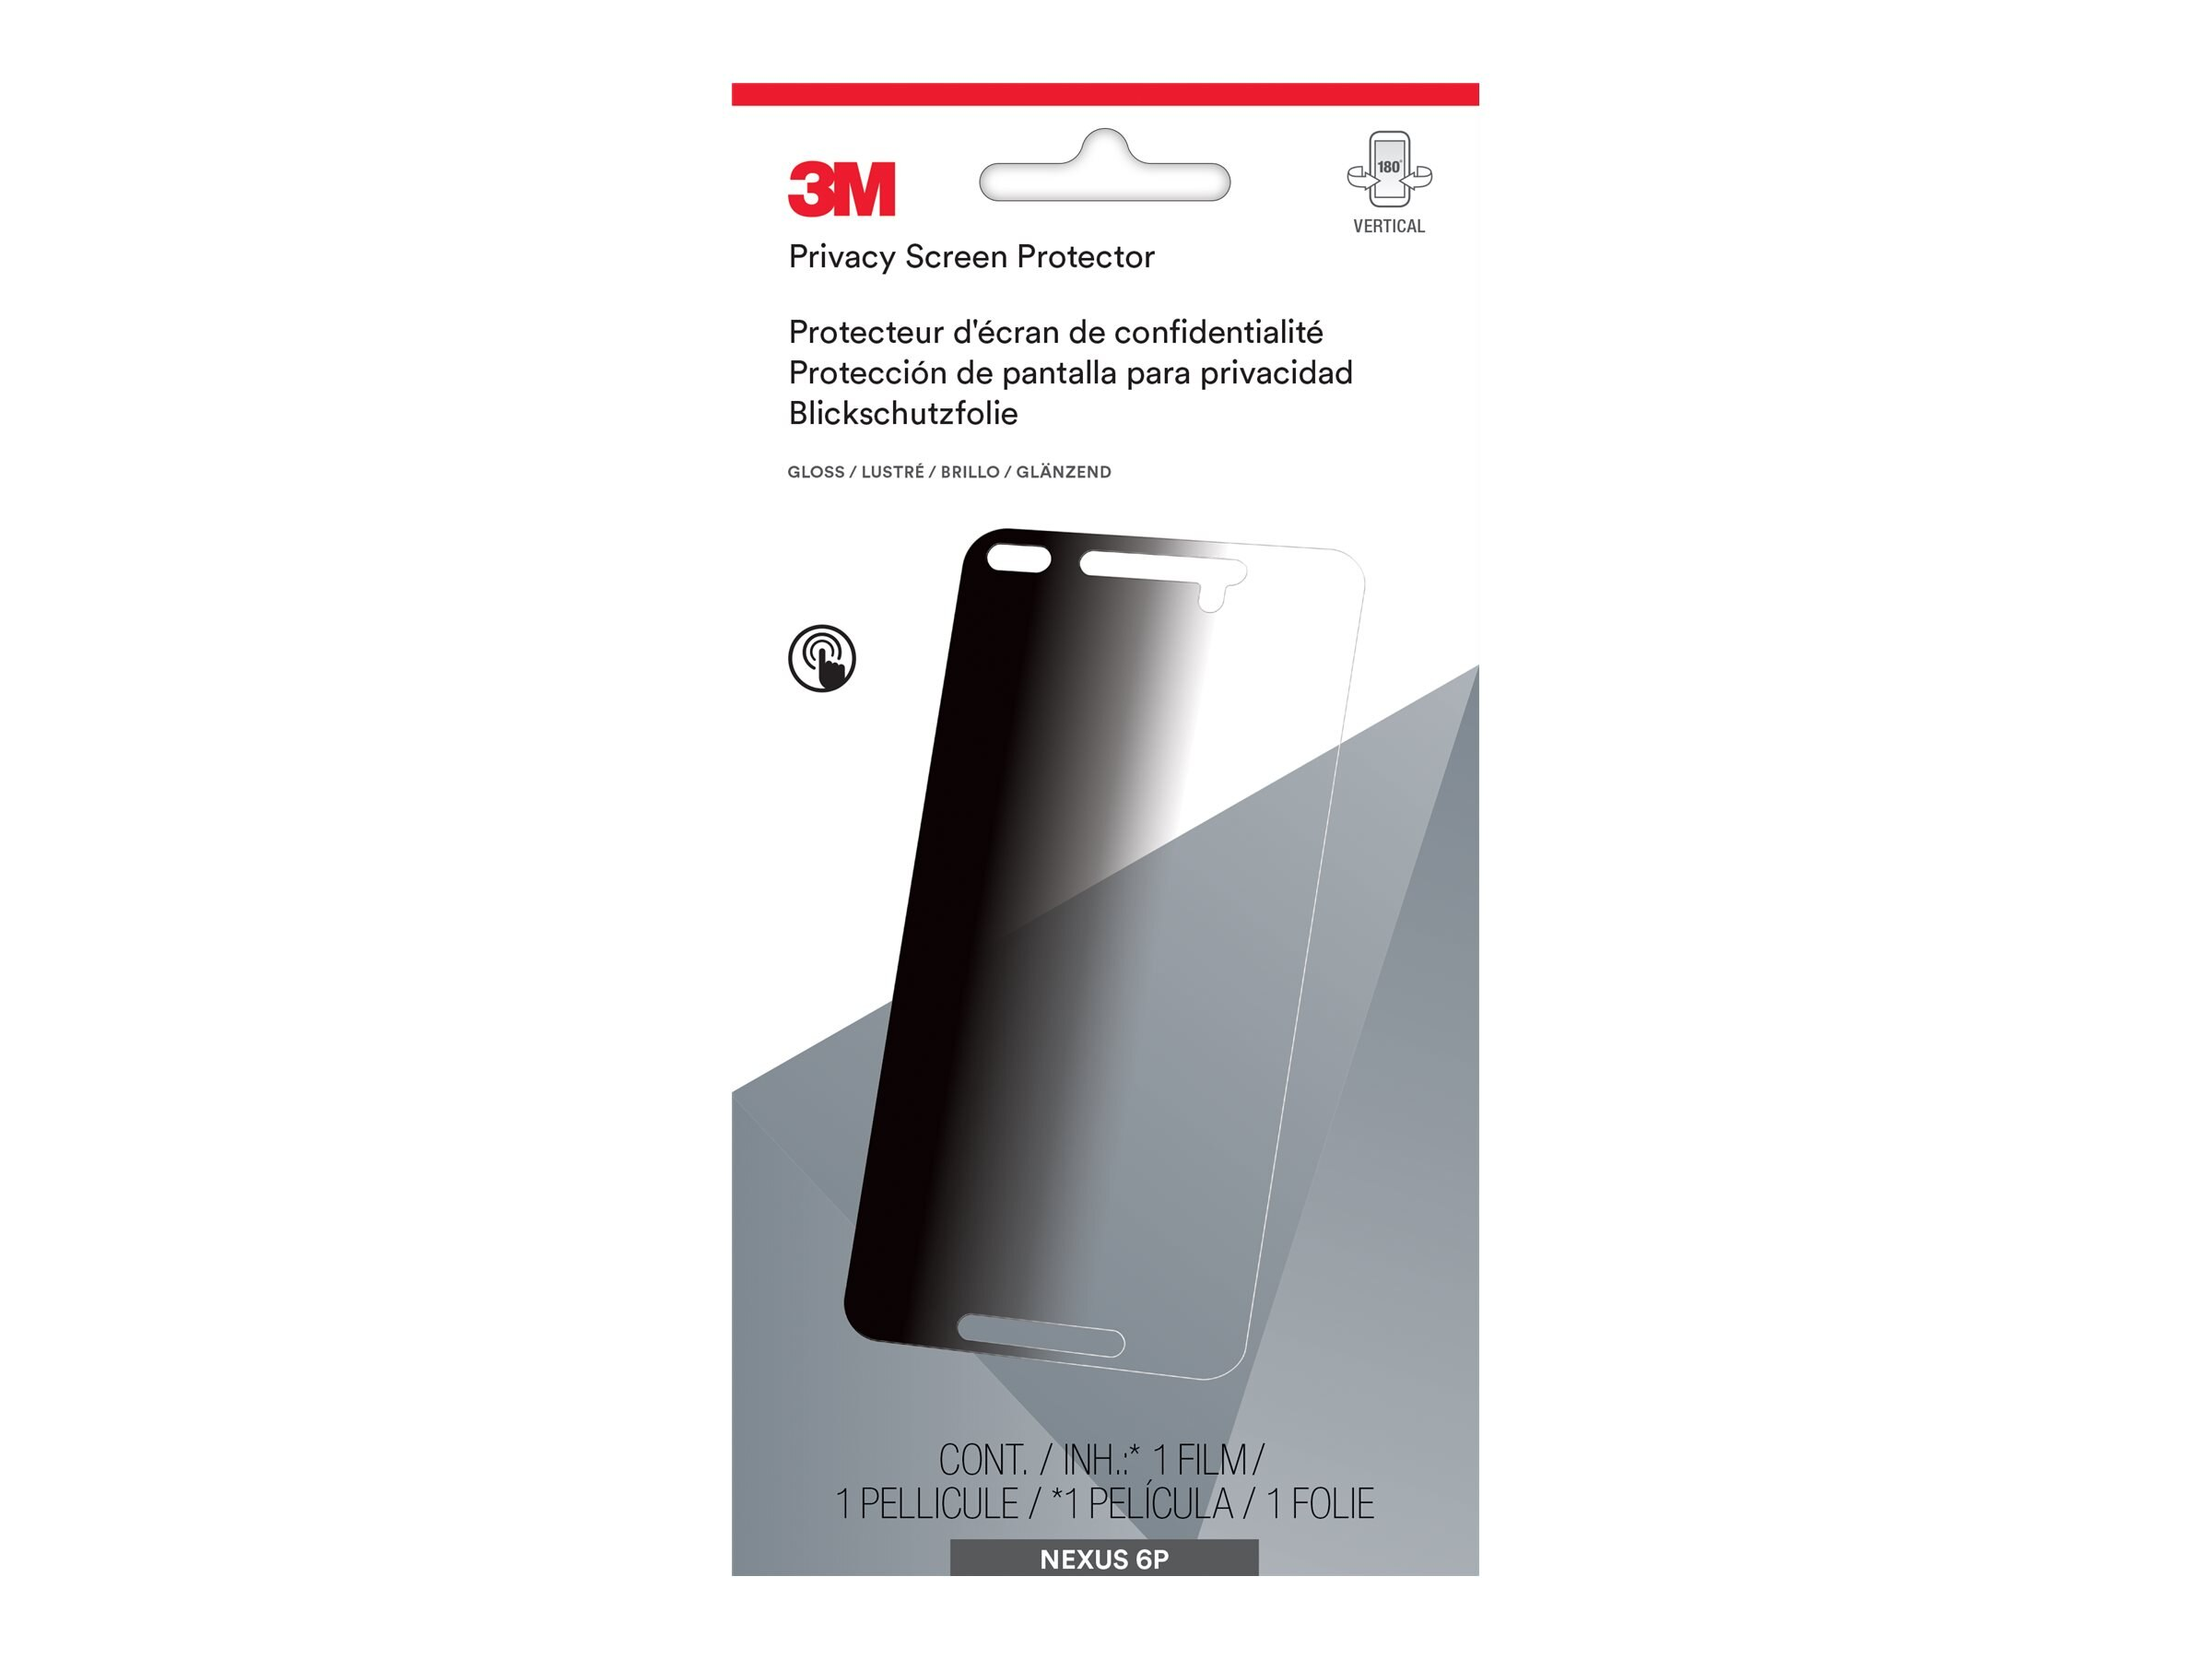 3M Privacy Screen Protector for Google Nexus 6P